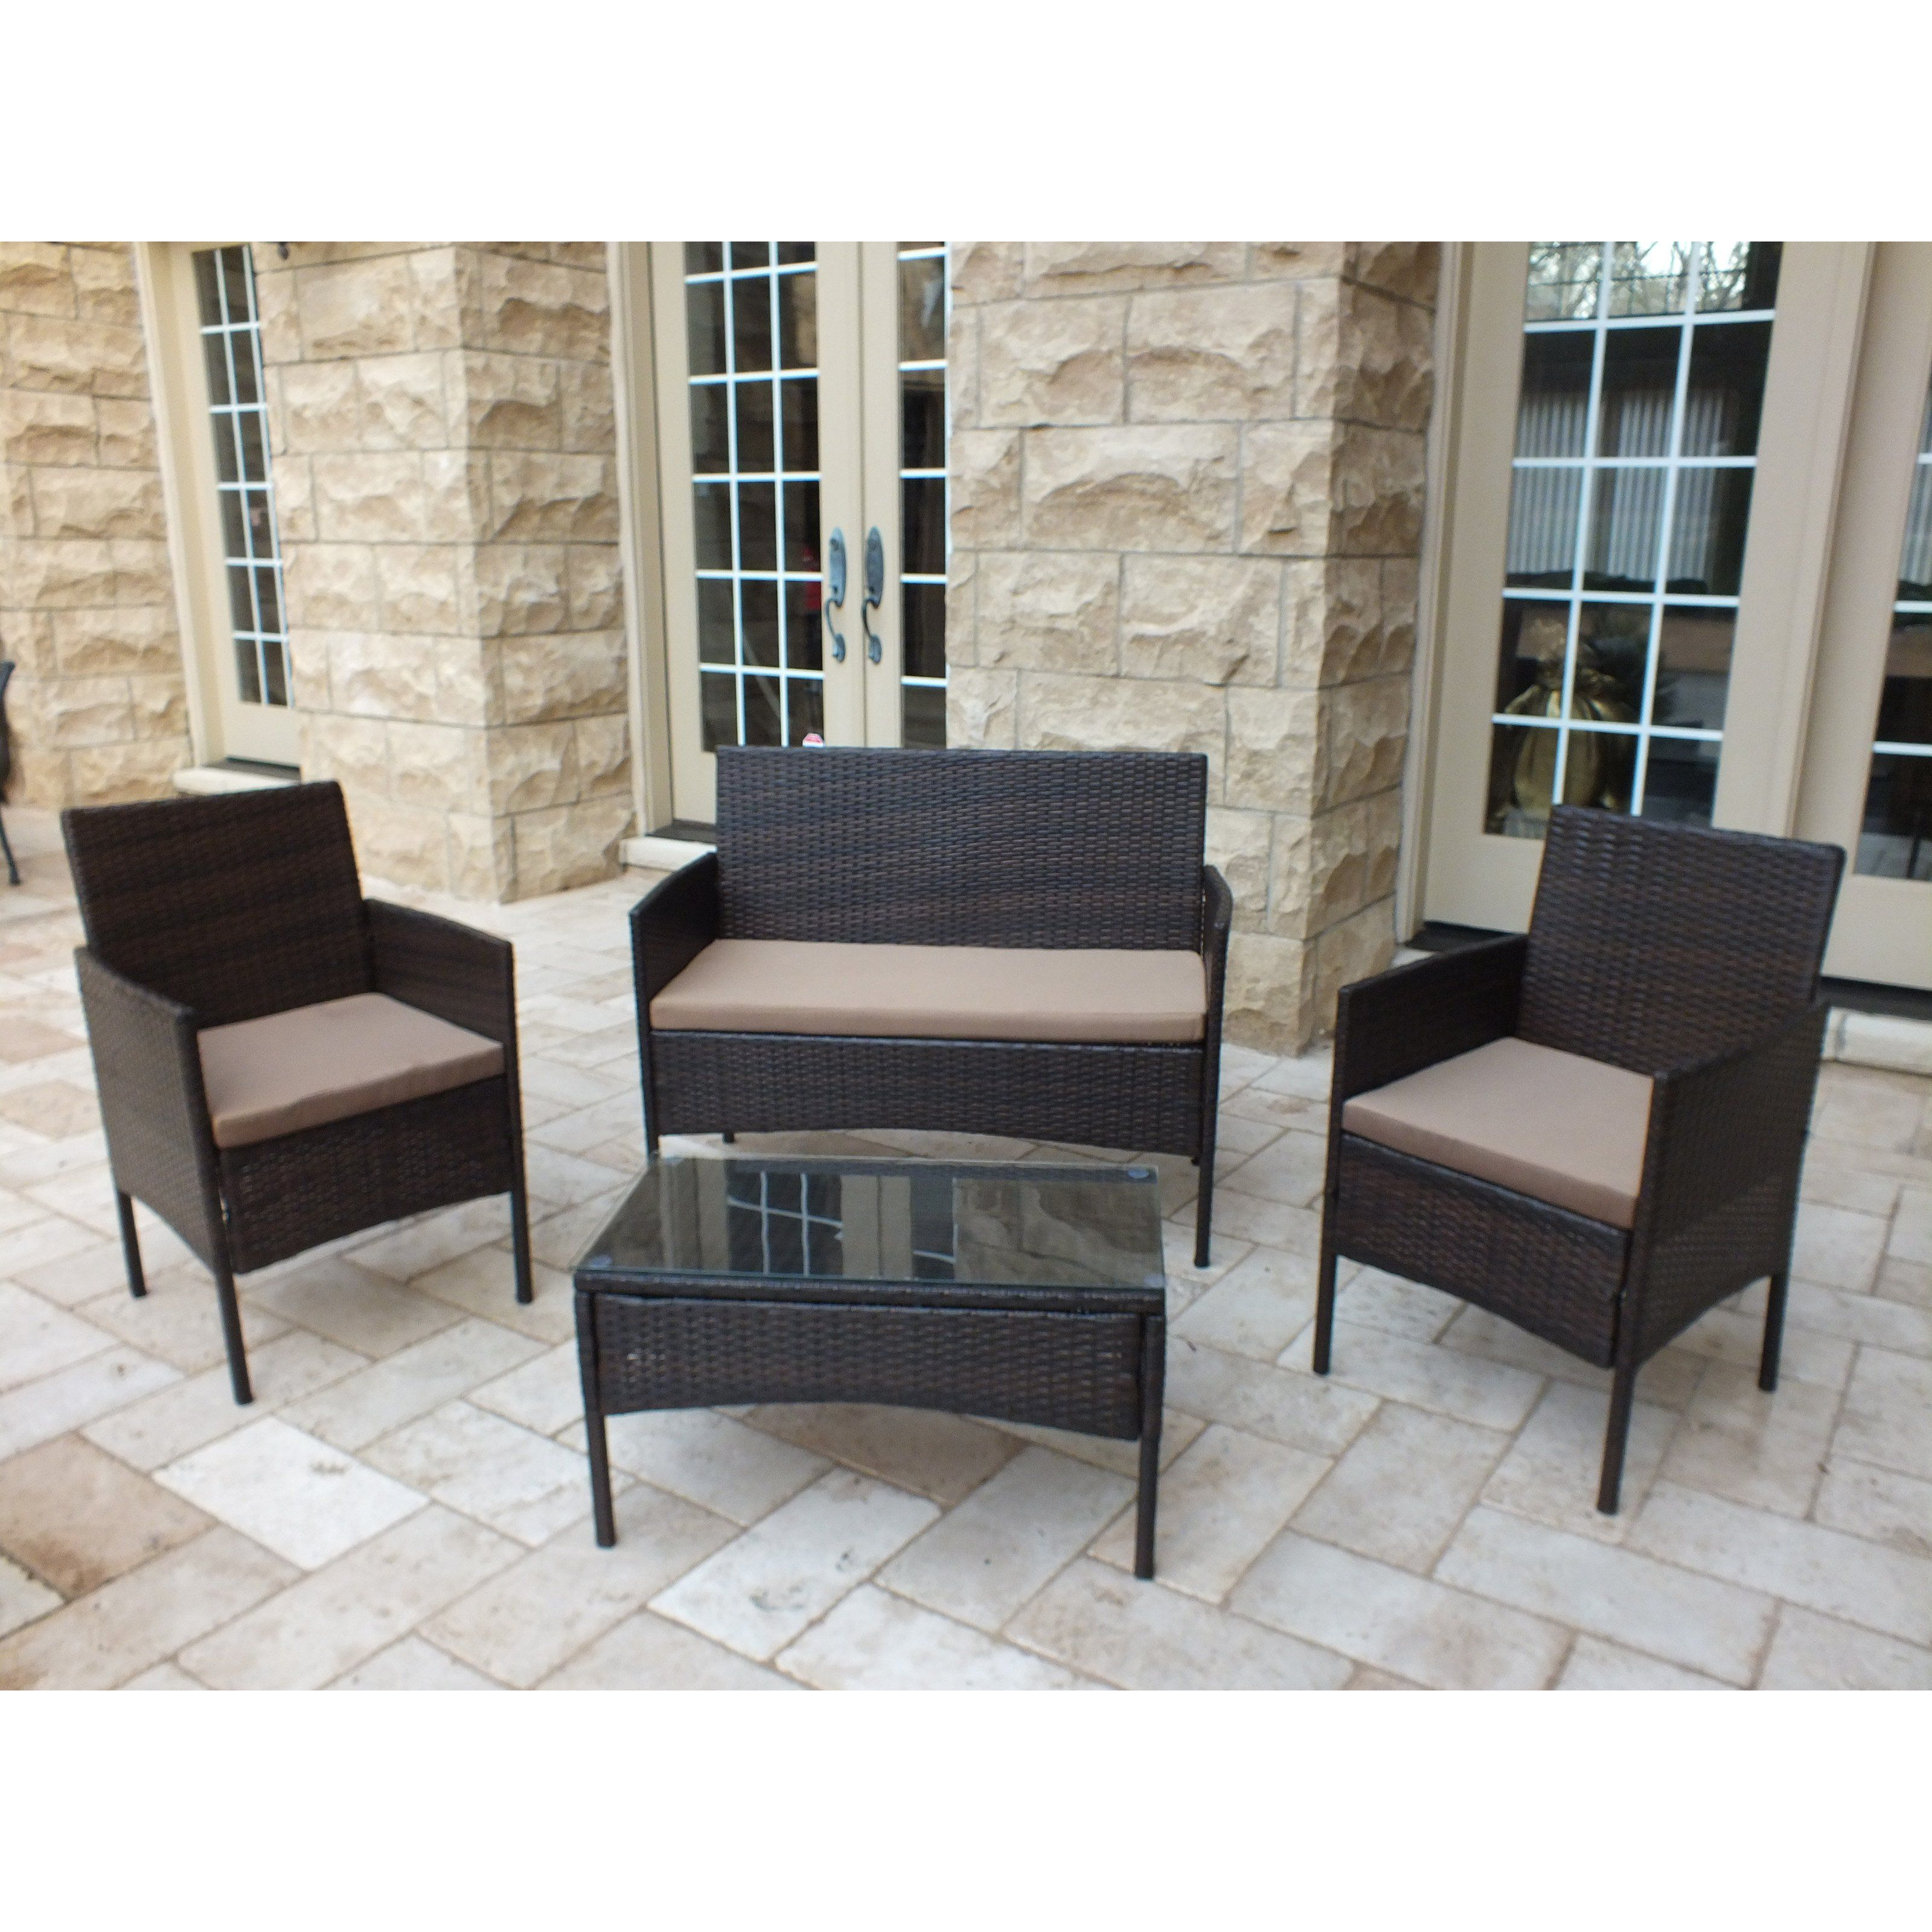 Outdoor JJ International Madison Wicker 4 Piece Patio Conversation